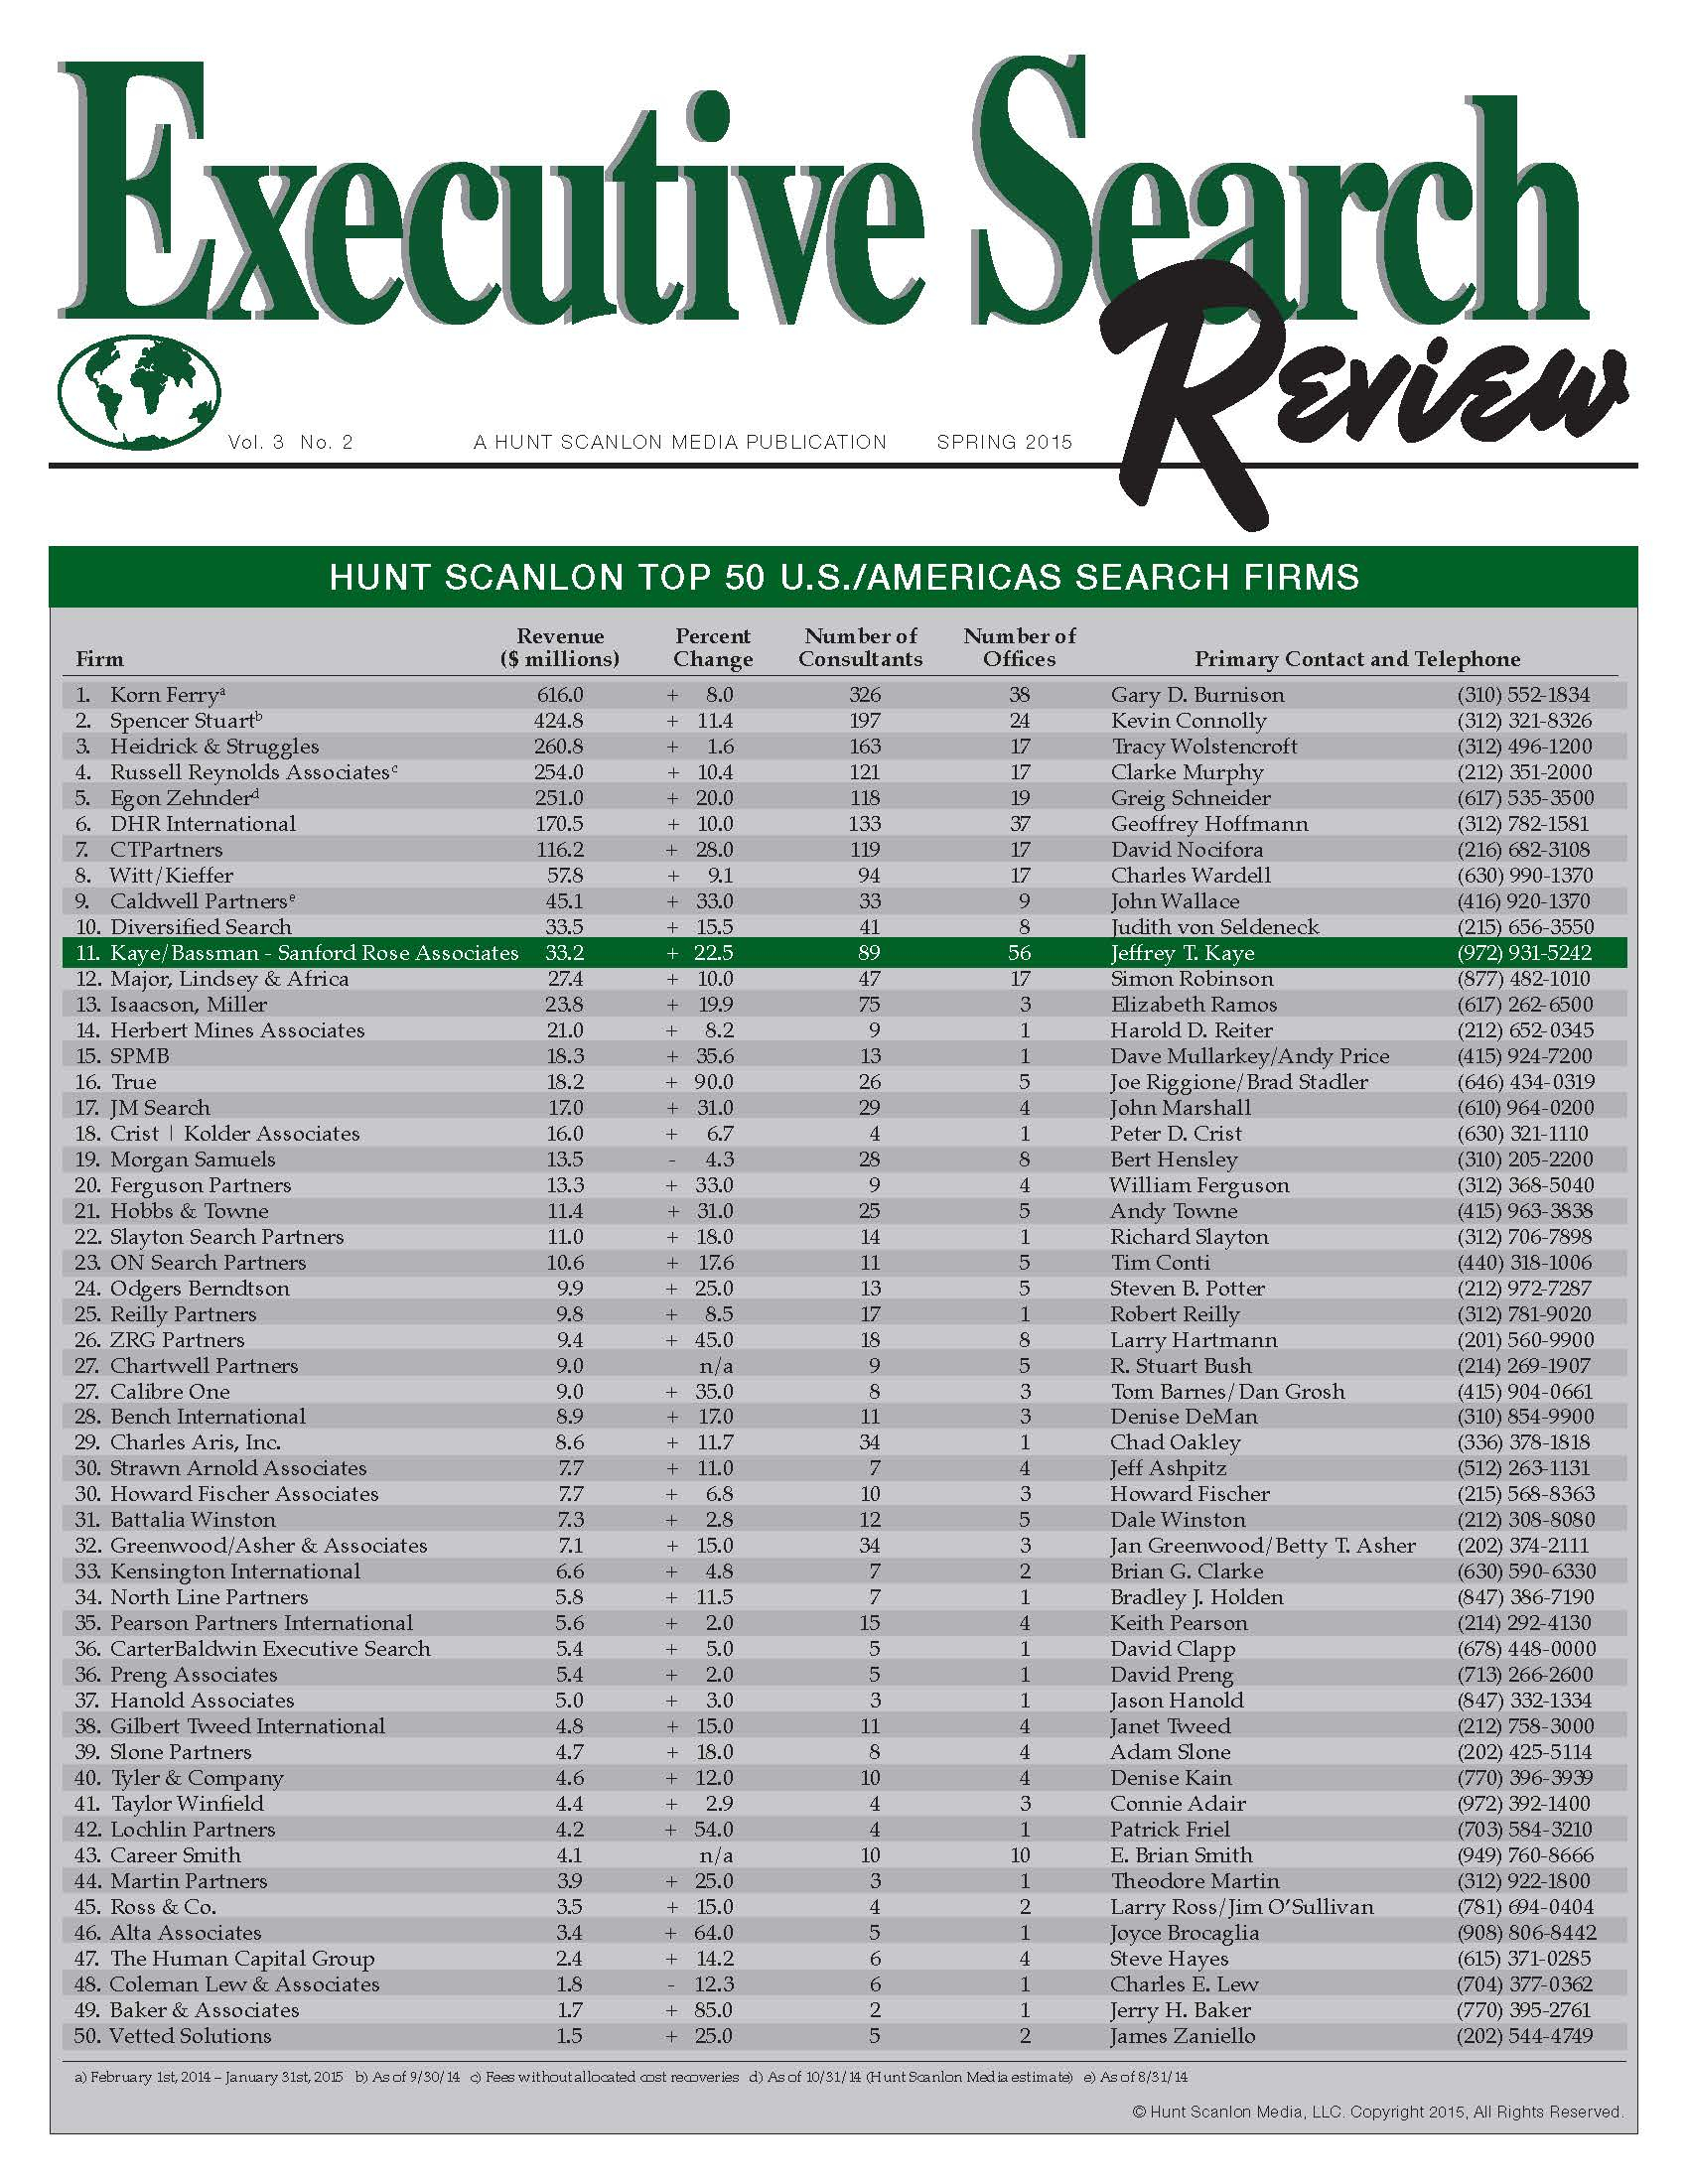 Executive Search Review: Top 50 U.S. Search Firms